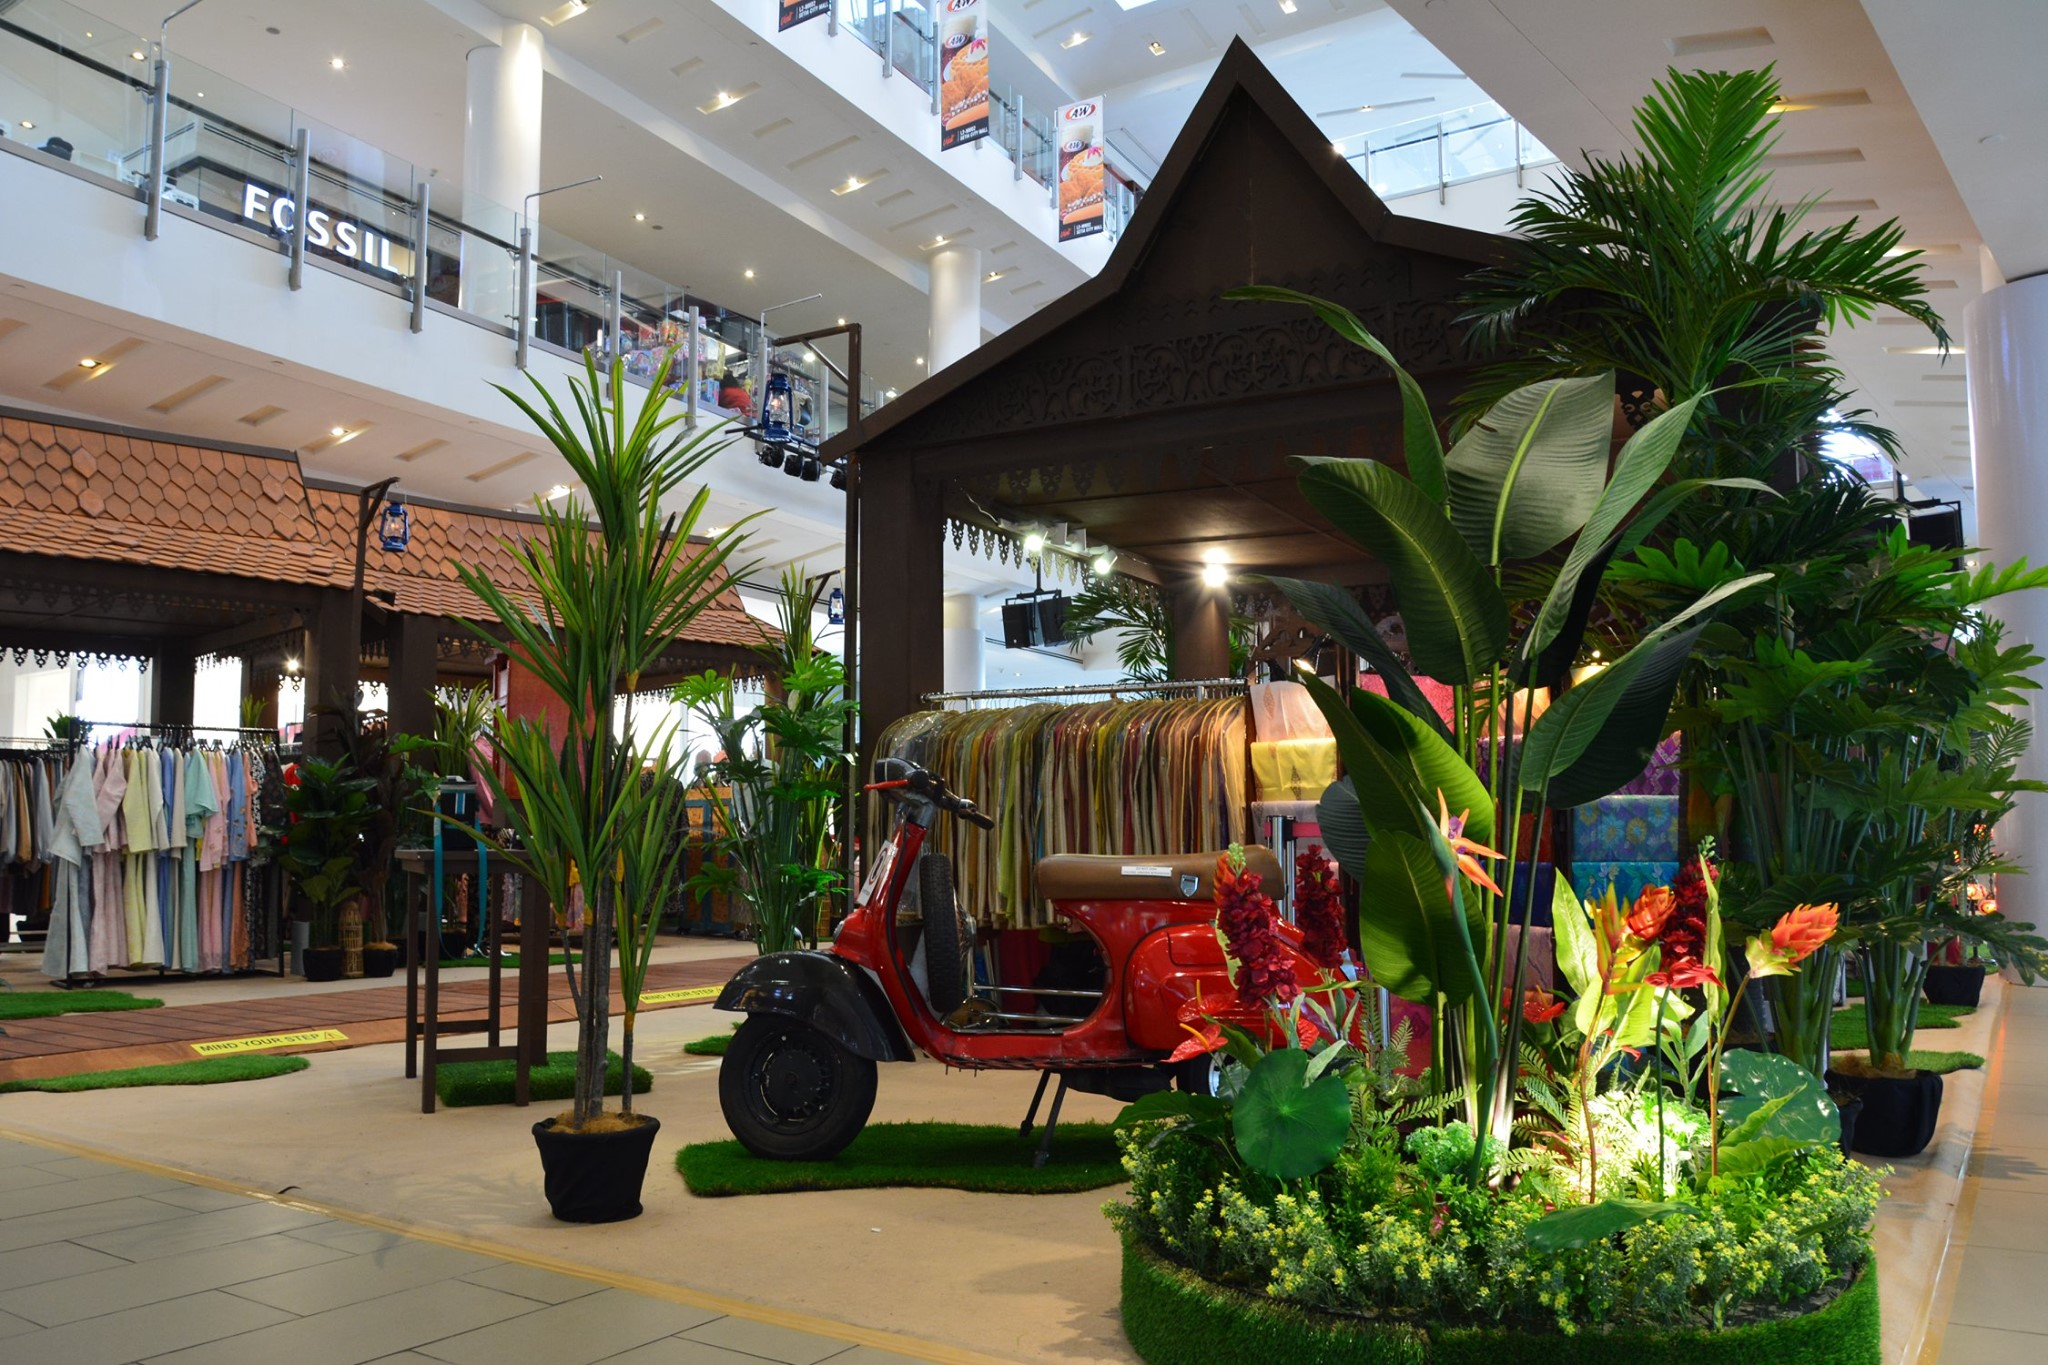 Image from Facebook Setia City Mall